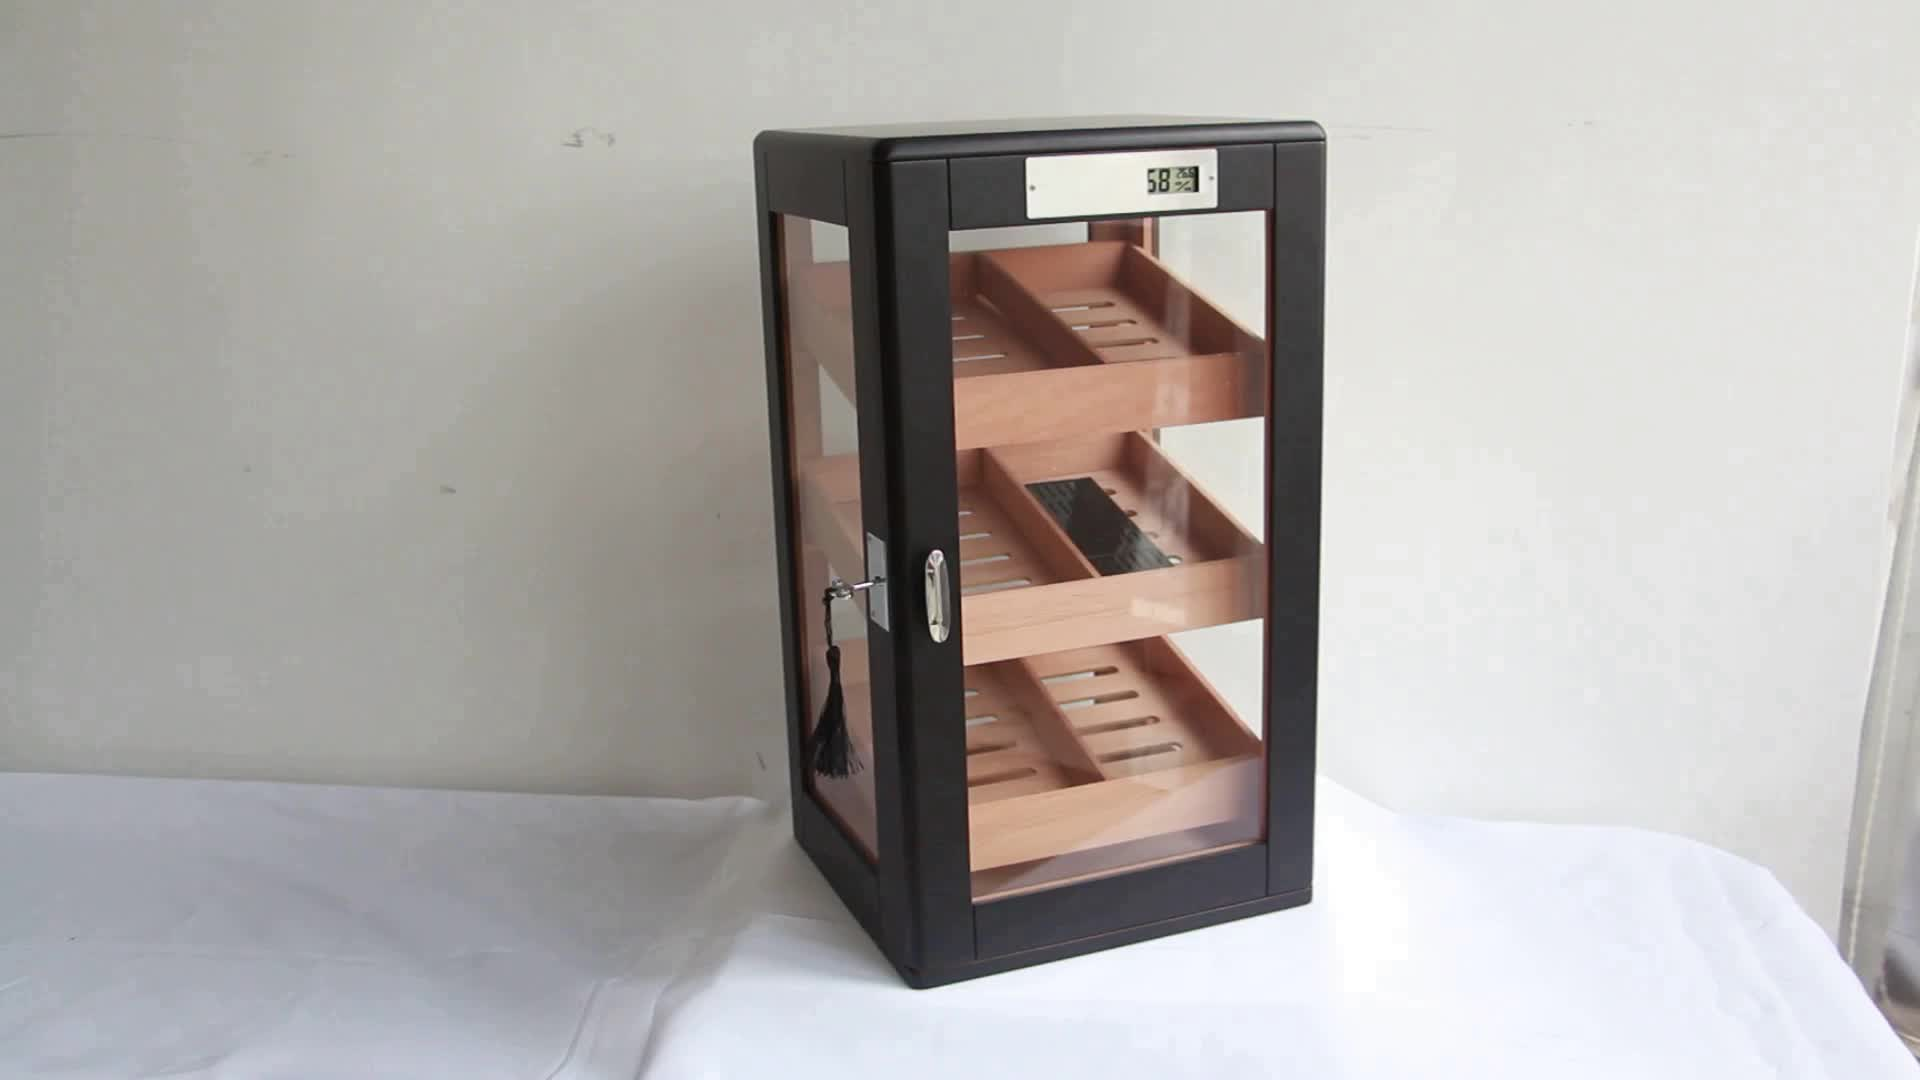 Freestanding Electrical Display Humidor Cigar Cabinet with Tray